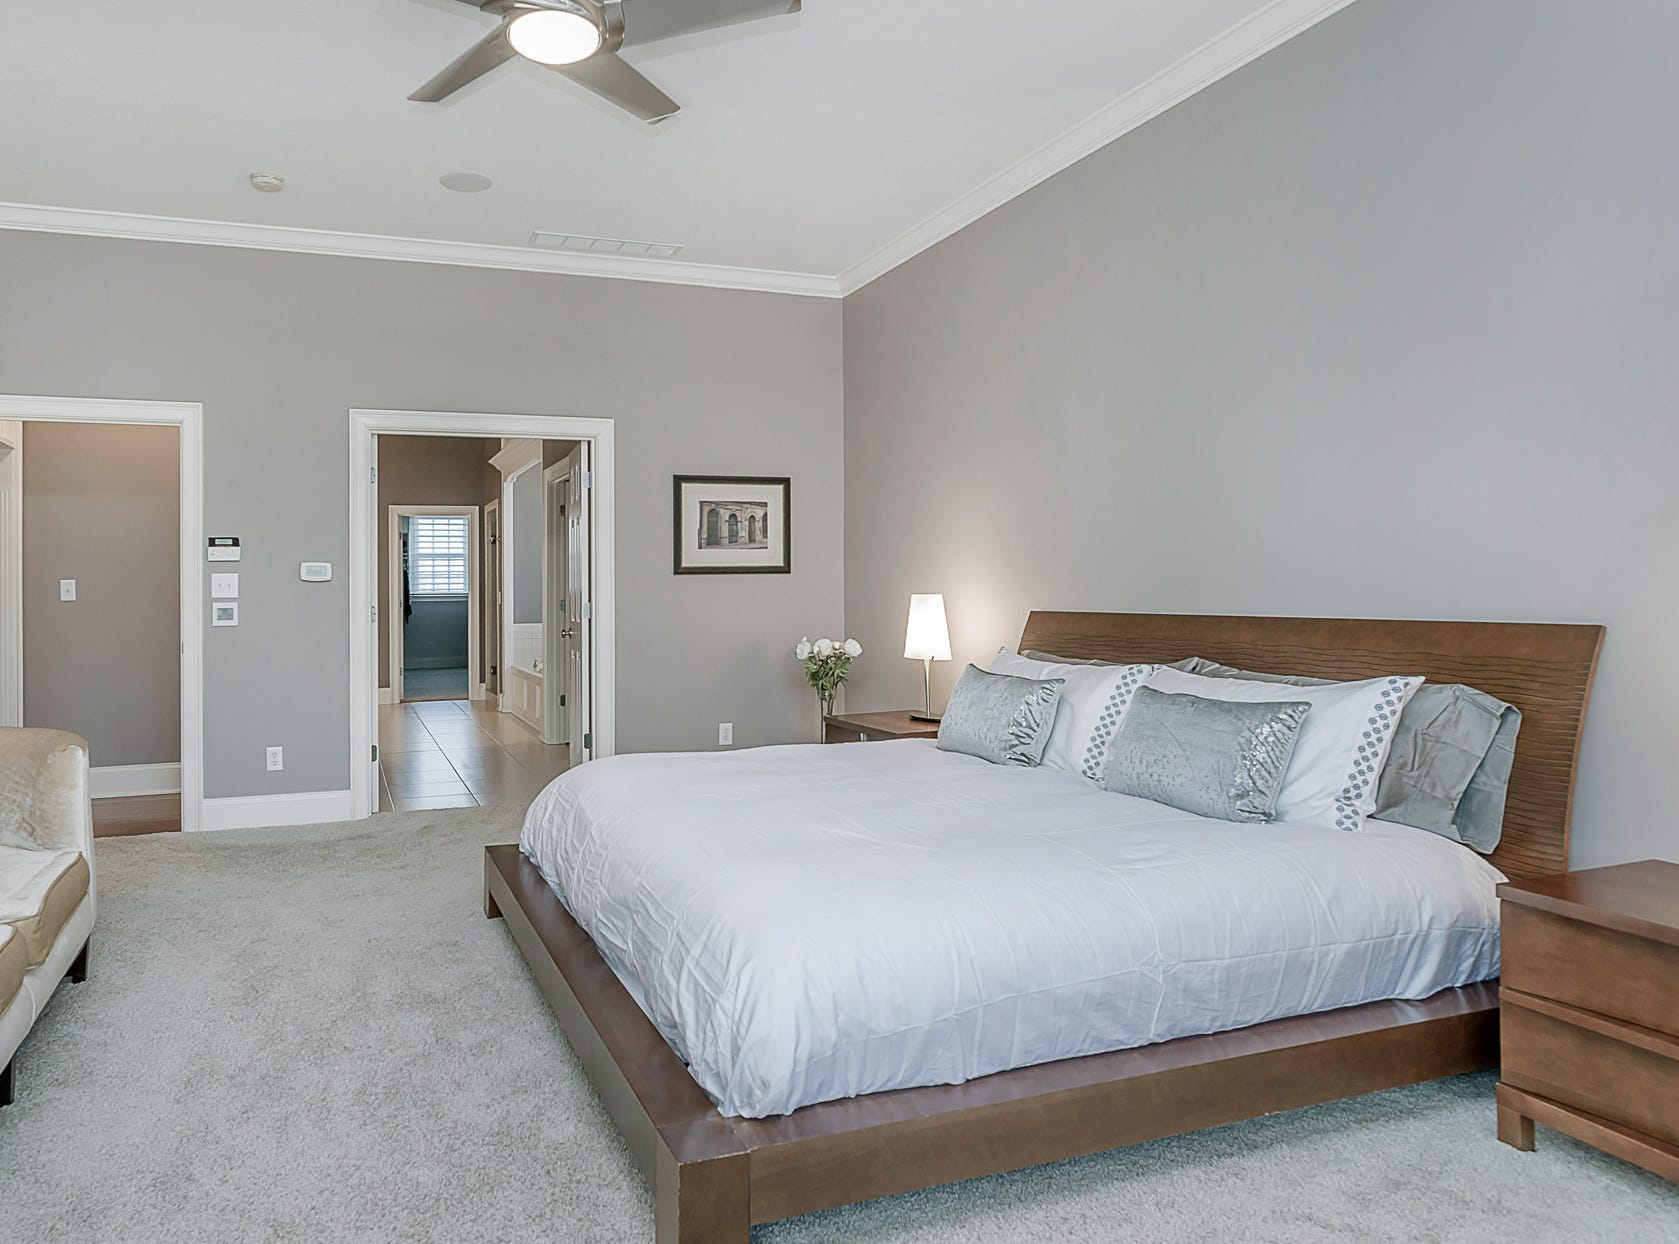 A view of the master bedroom on the main floor, which features a full bath and walk-in closet.